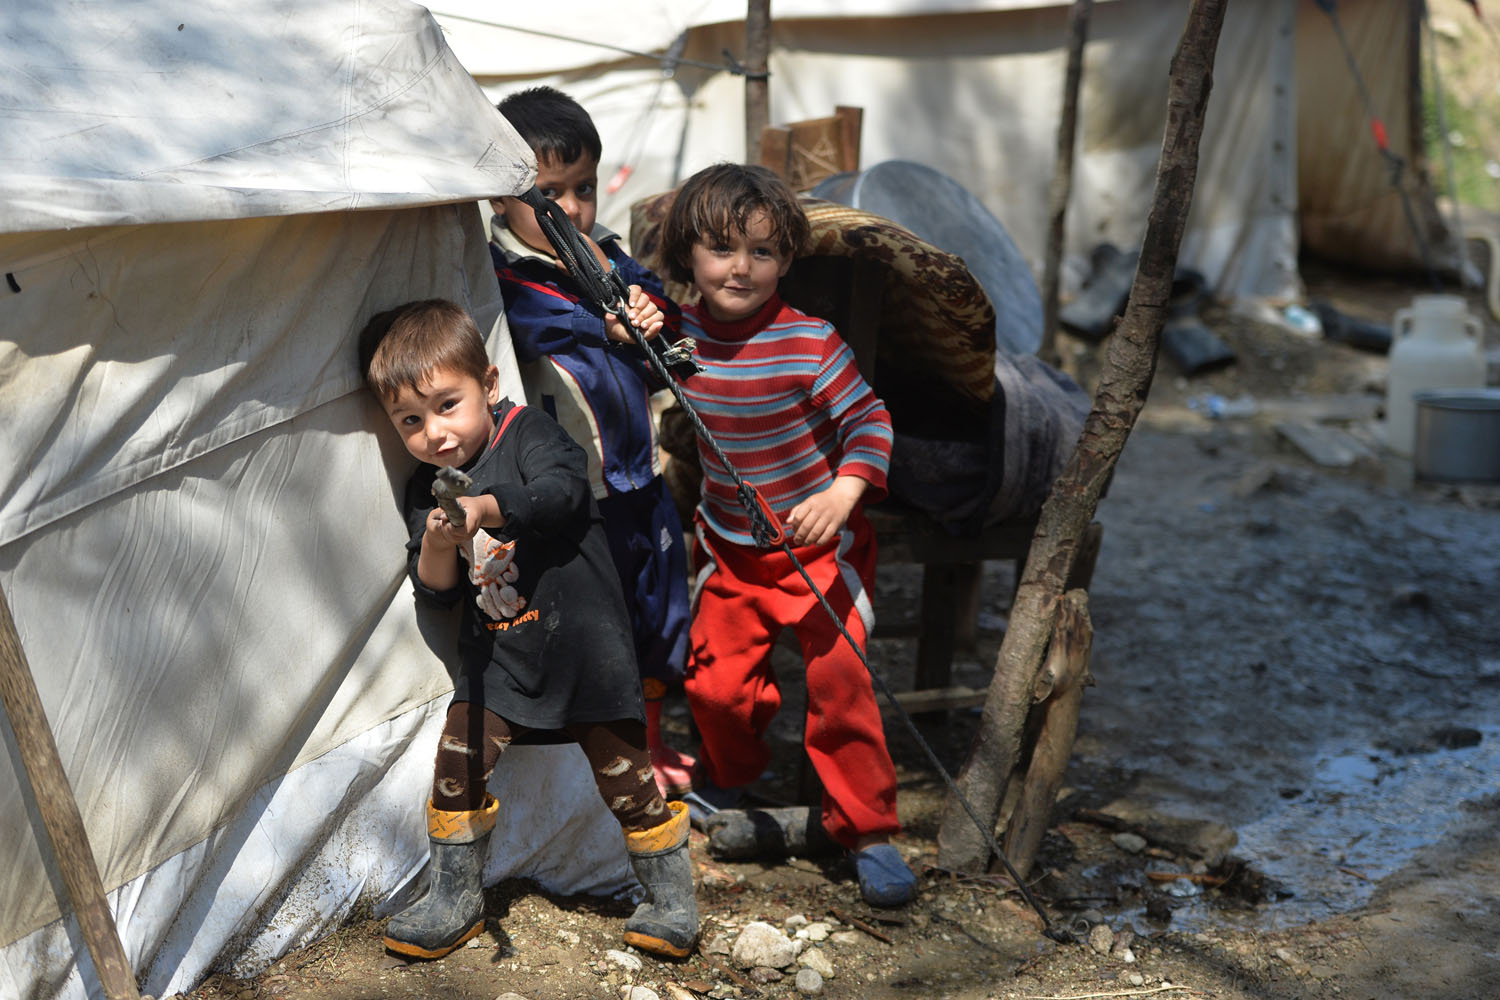 April 23, 2013. Syrian Turkmen children are seen at a make-shift refugee camp some kilometers away from the Syria-Turkey border.